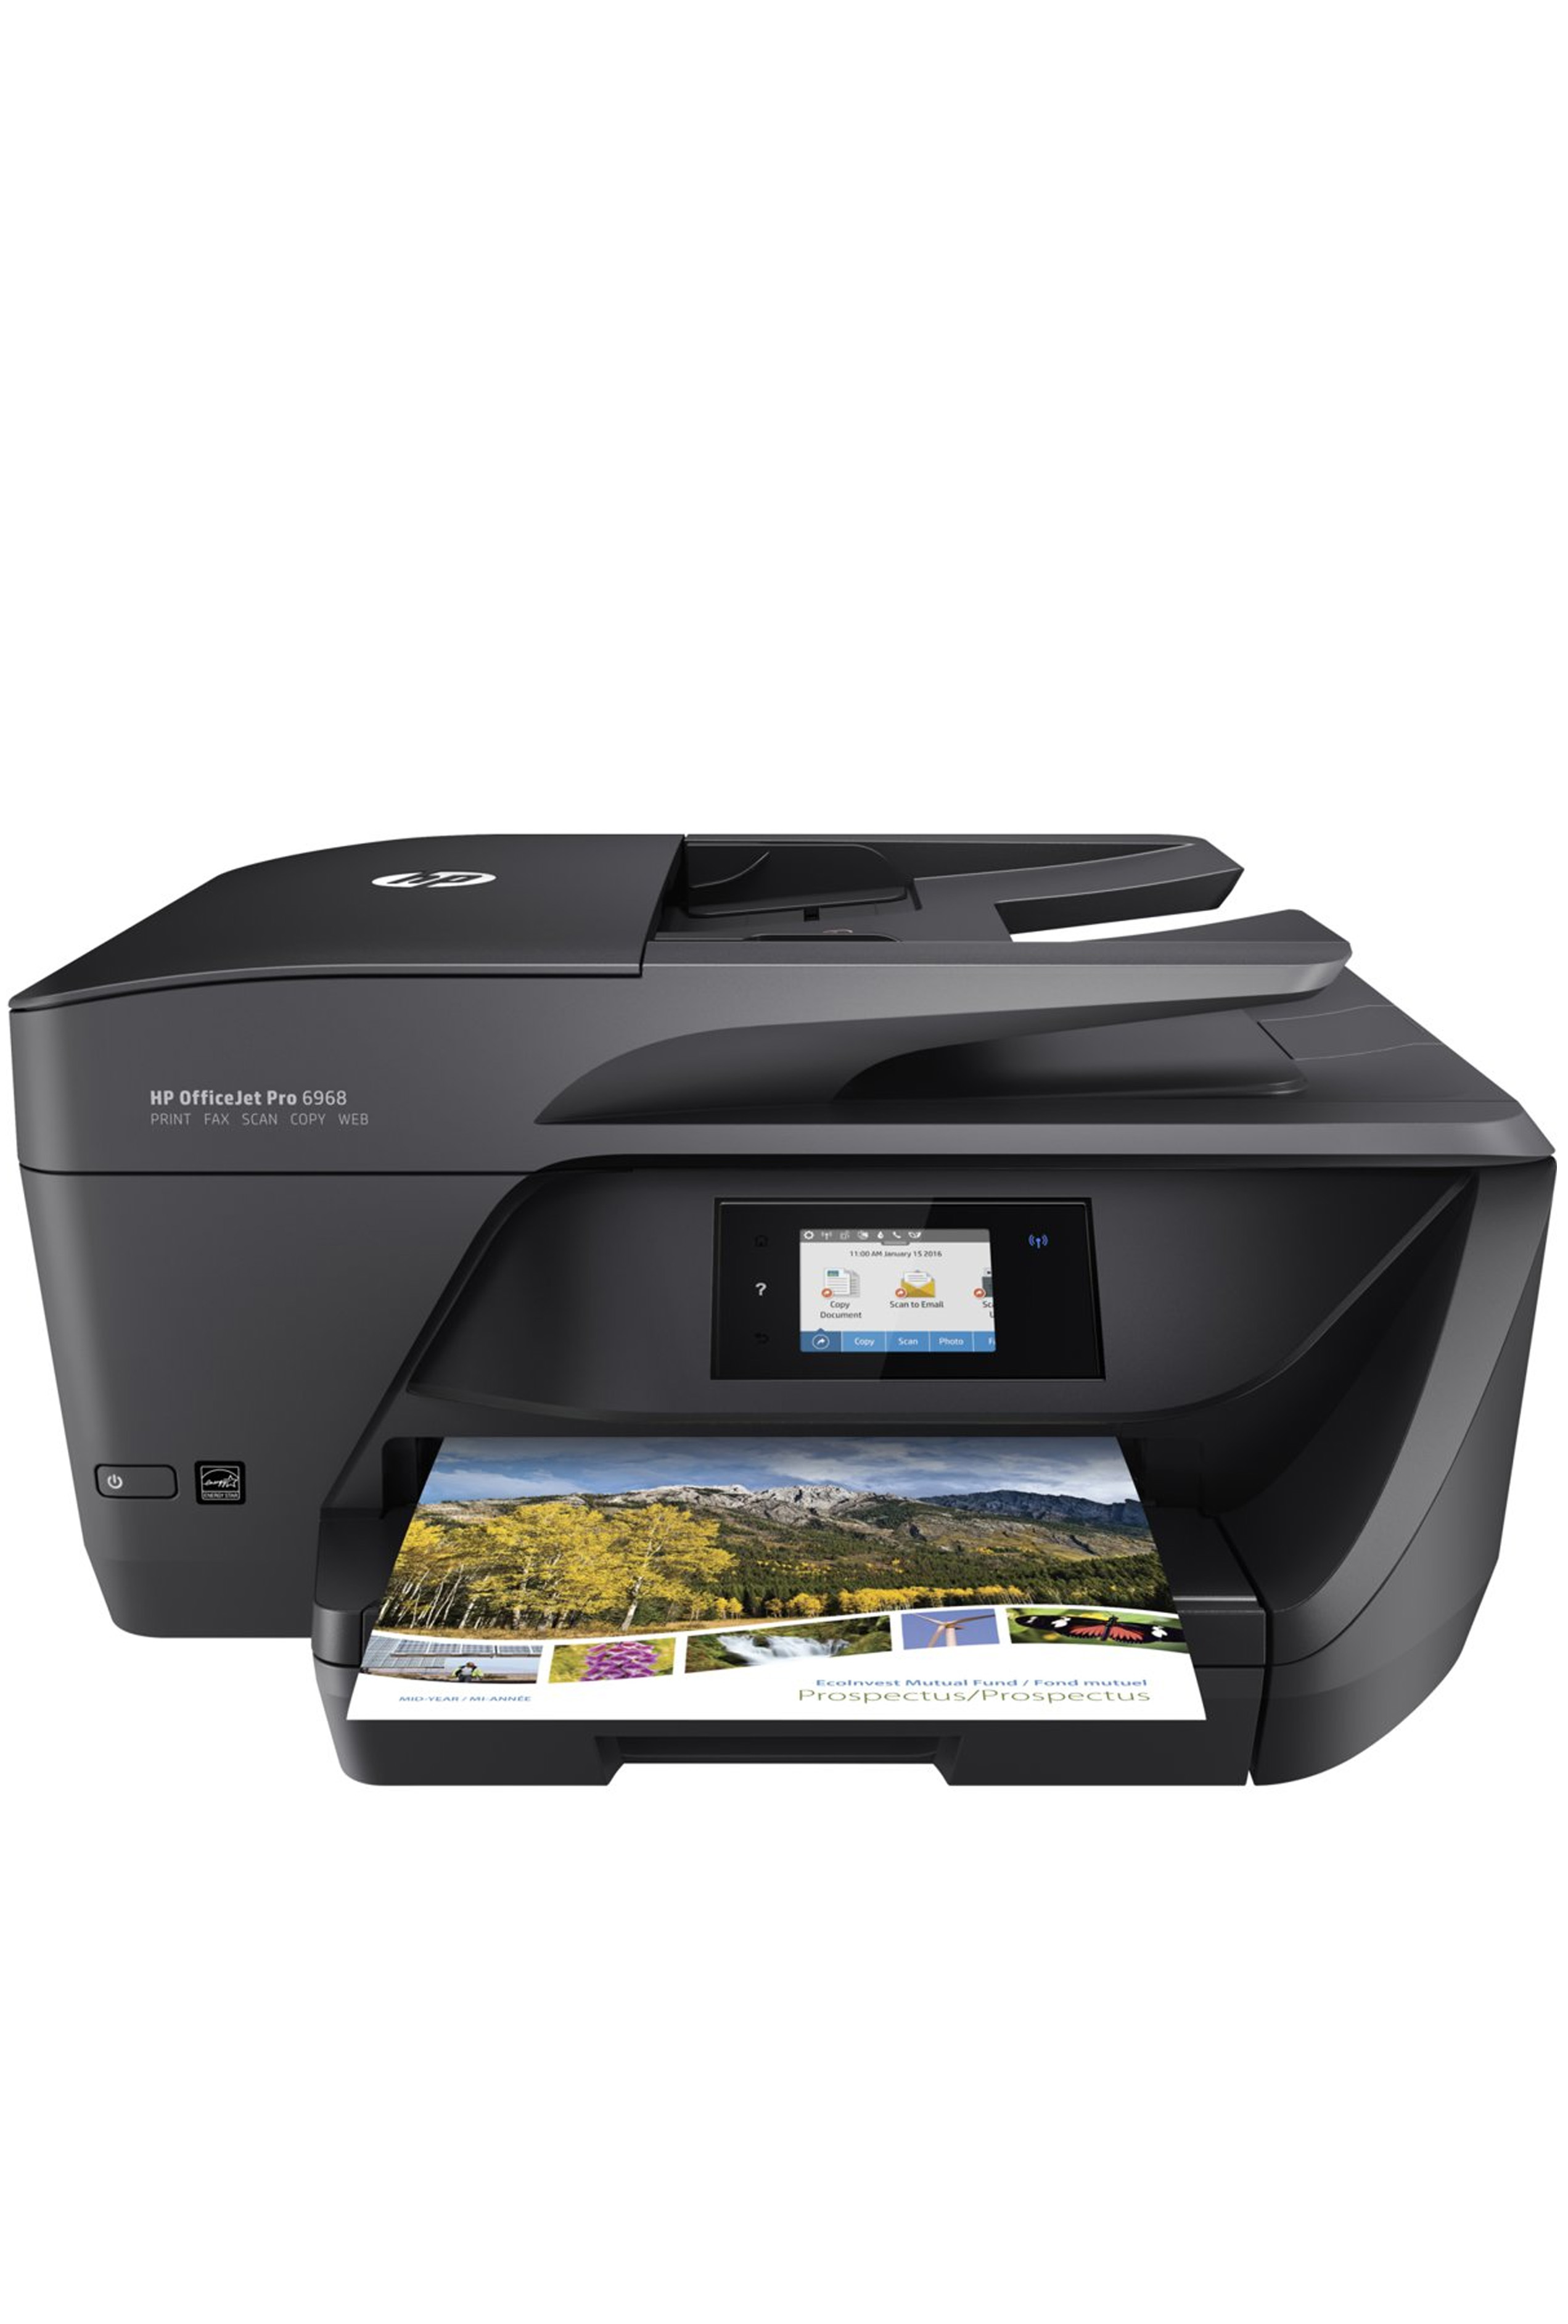 HP OfficeJet Pro 6968 All-in-One Printer up to 30PPM Print/...